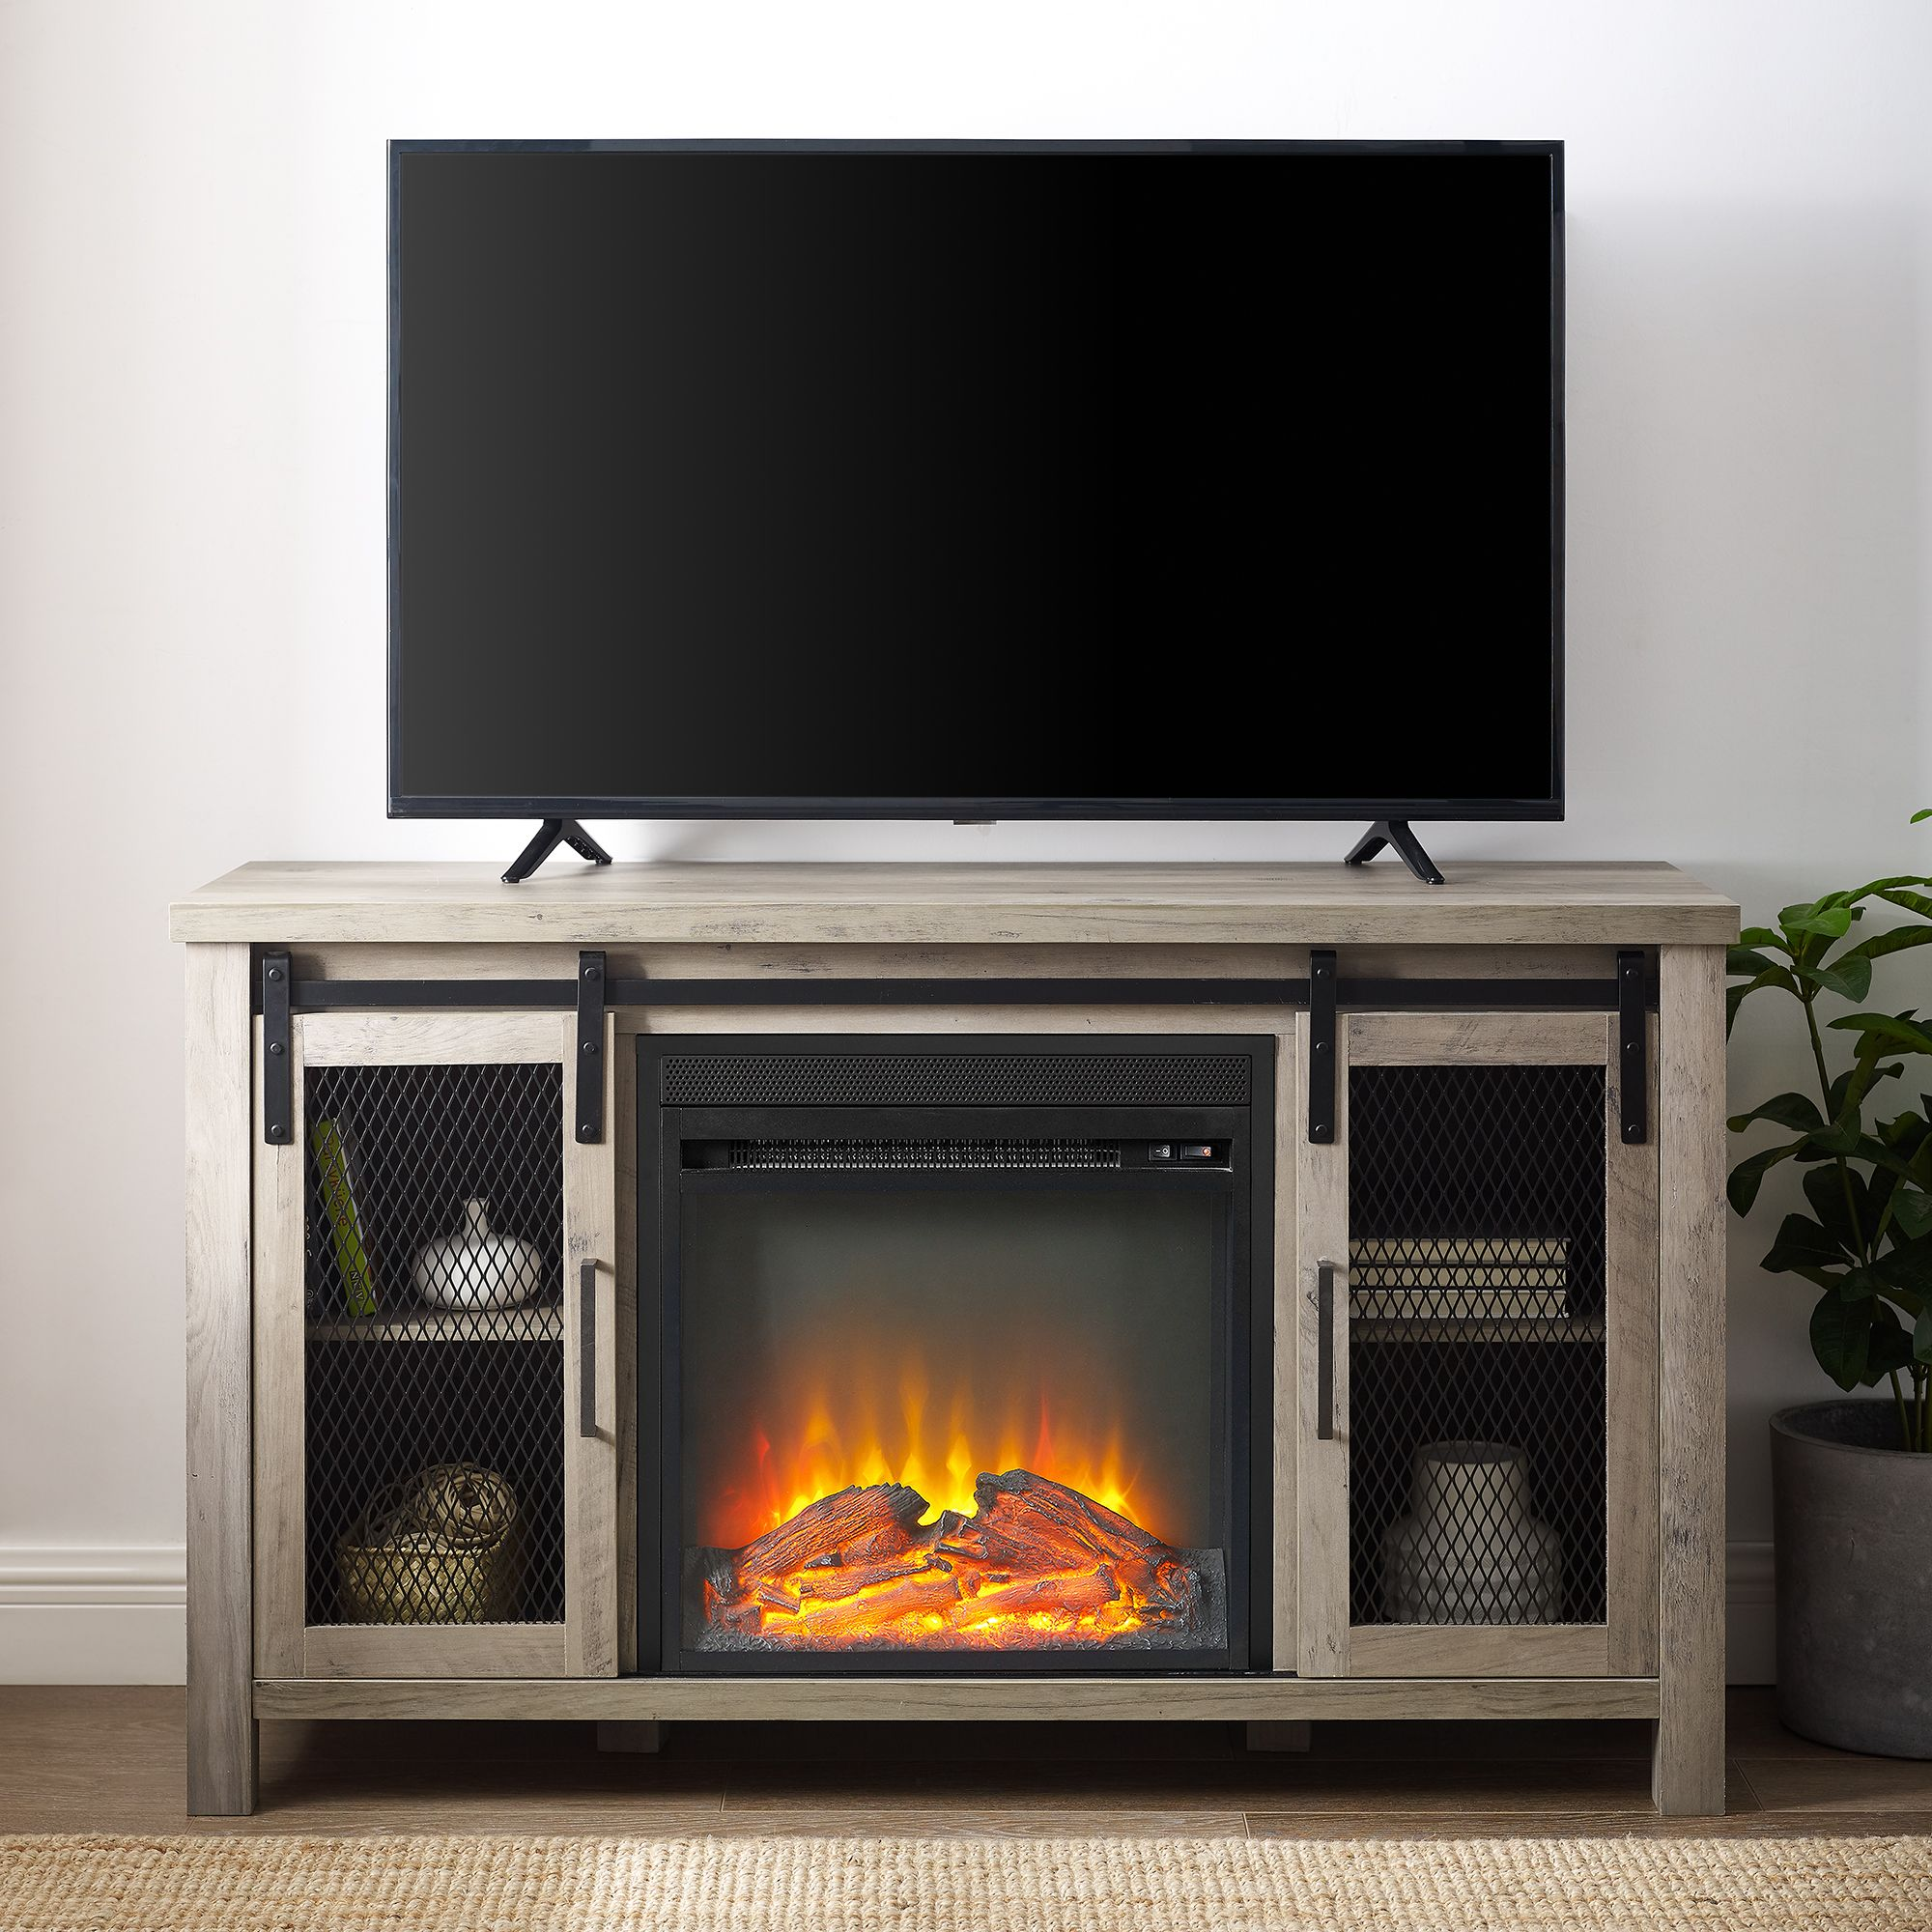 Manor Park Rustic Farmhouse Fireplace Tv Stand With Sliding Doors For Tv S Up To 52 Grey Wash Walmart Com Fireplace Tv Stand Rustic Farmhouse Fireplace Farmhouse Fireplace